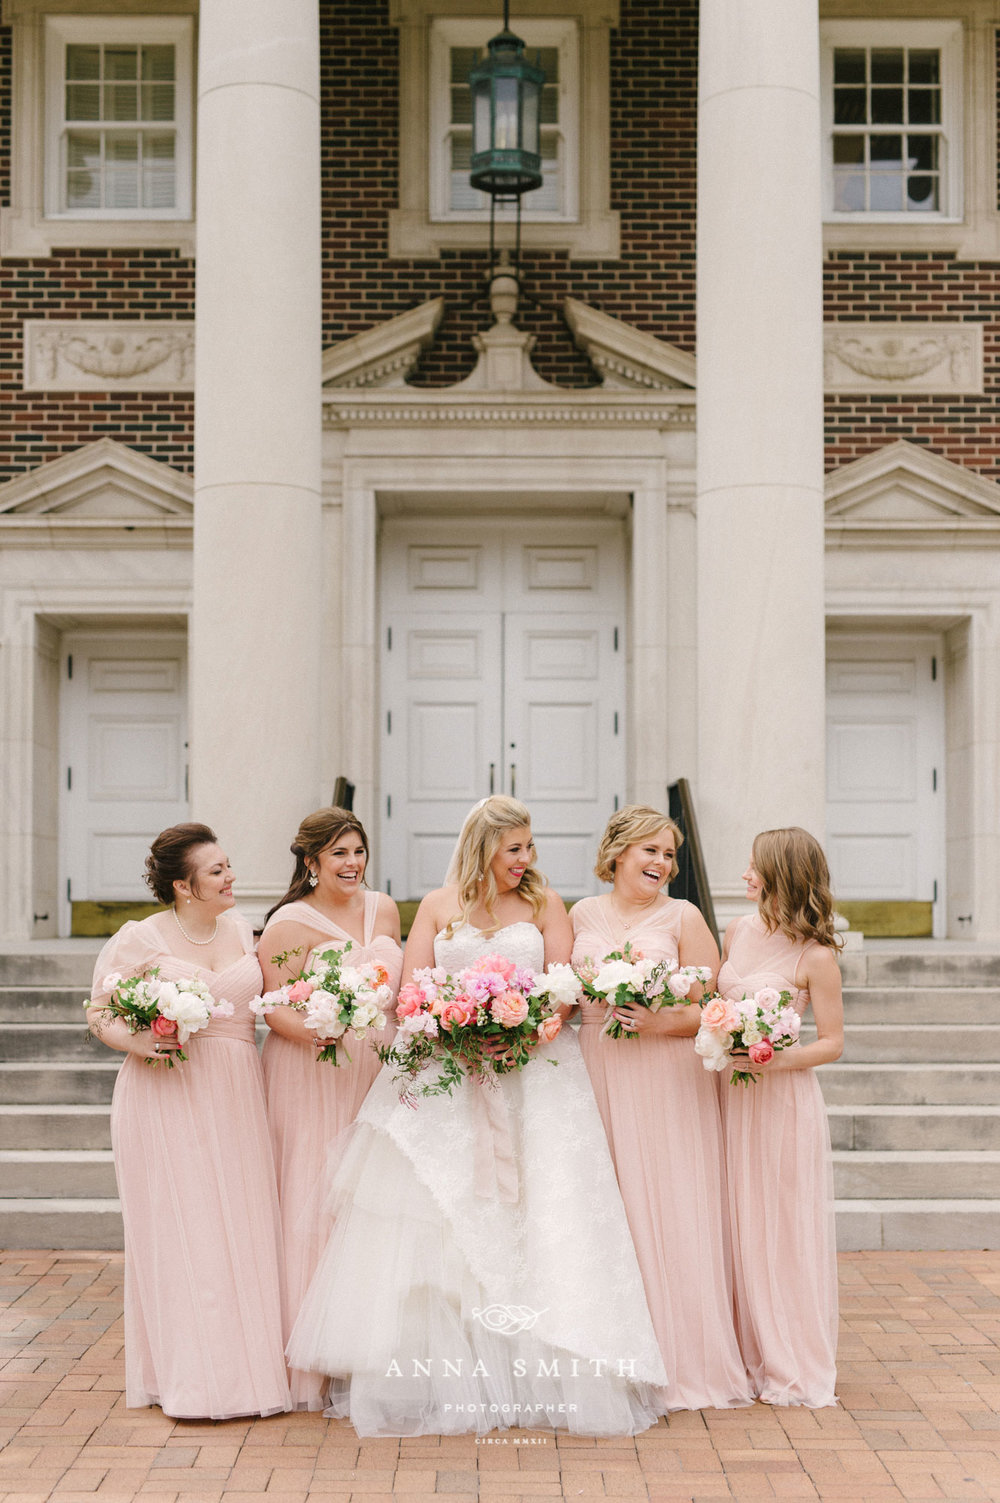 Perkins Chapel wedding with Blush bridesmaid Dresses